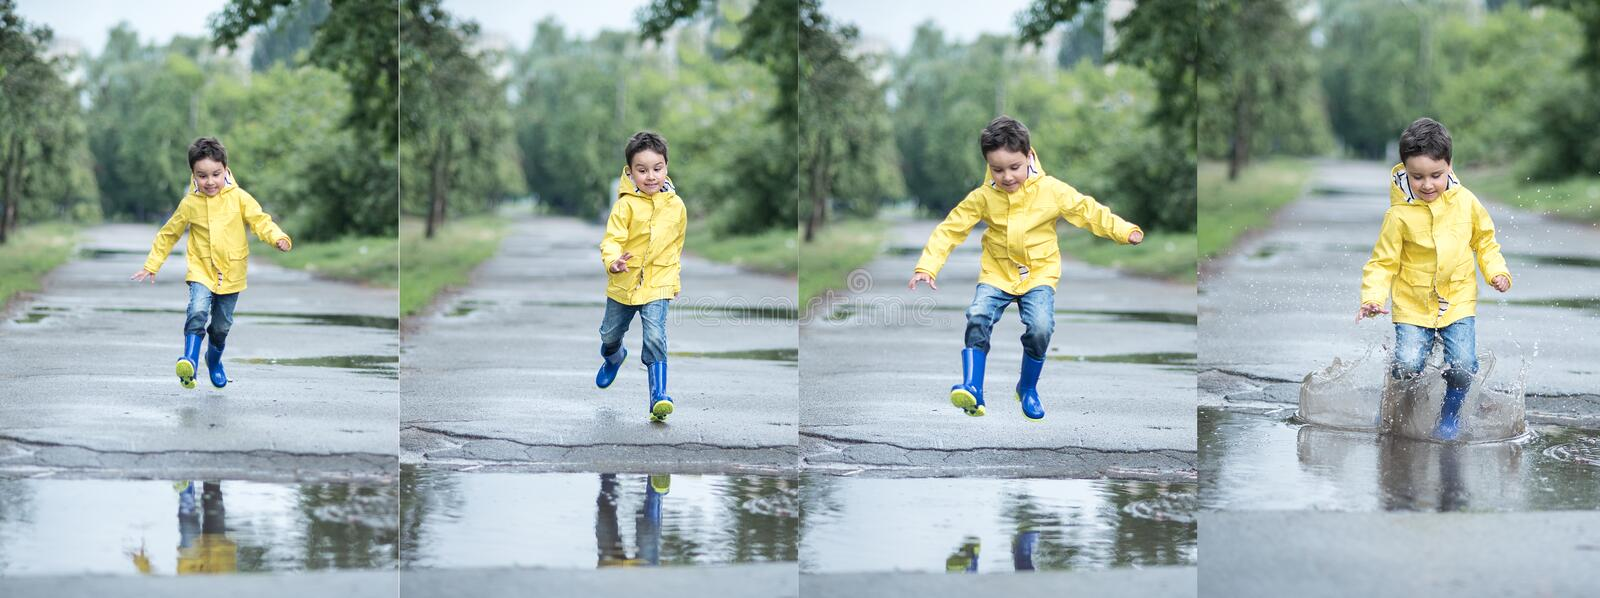 Little boy playing in puddle stock image